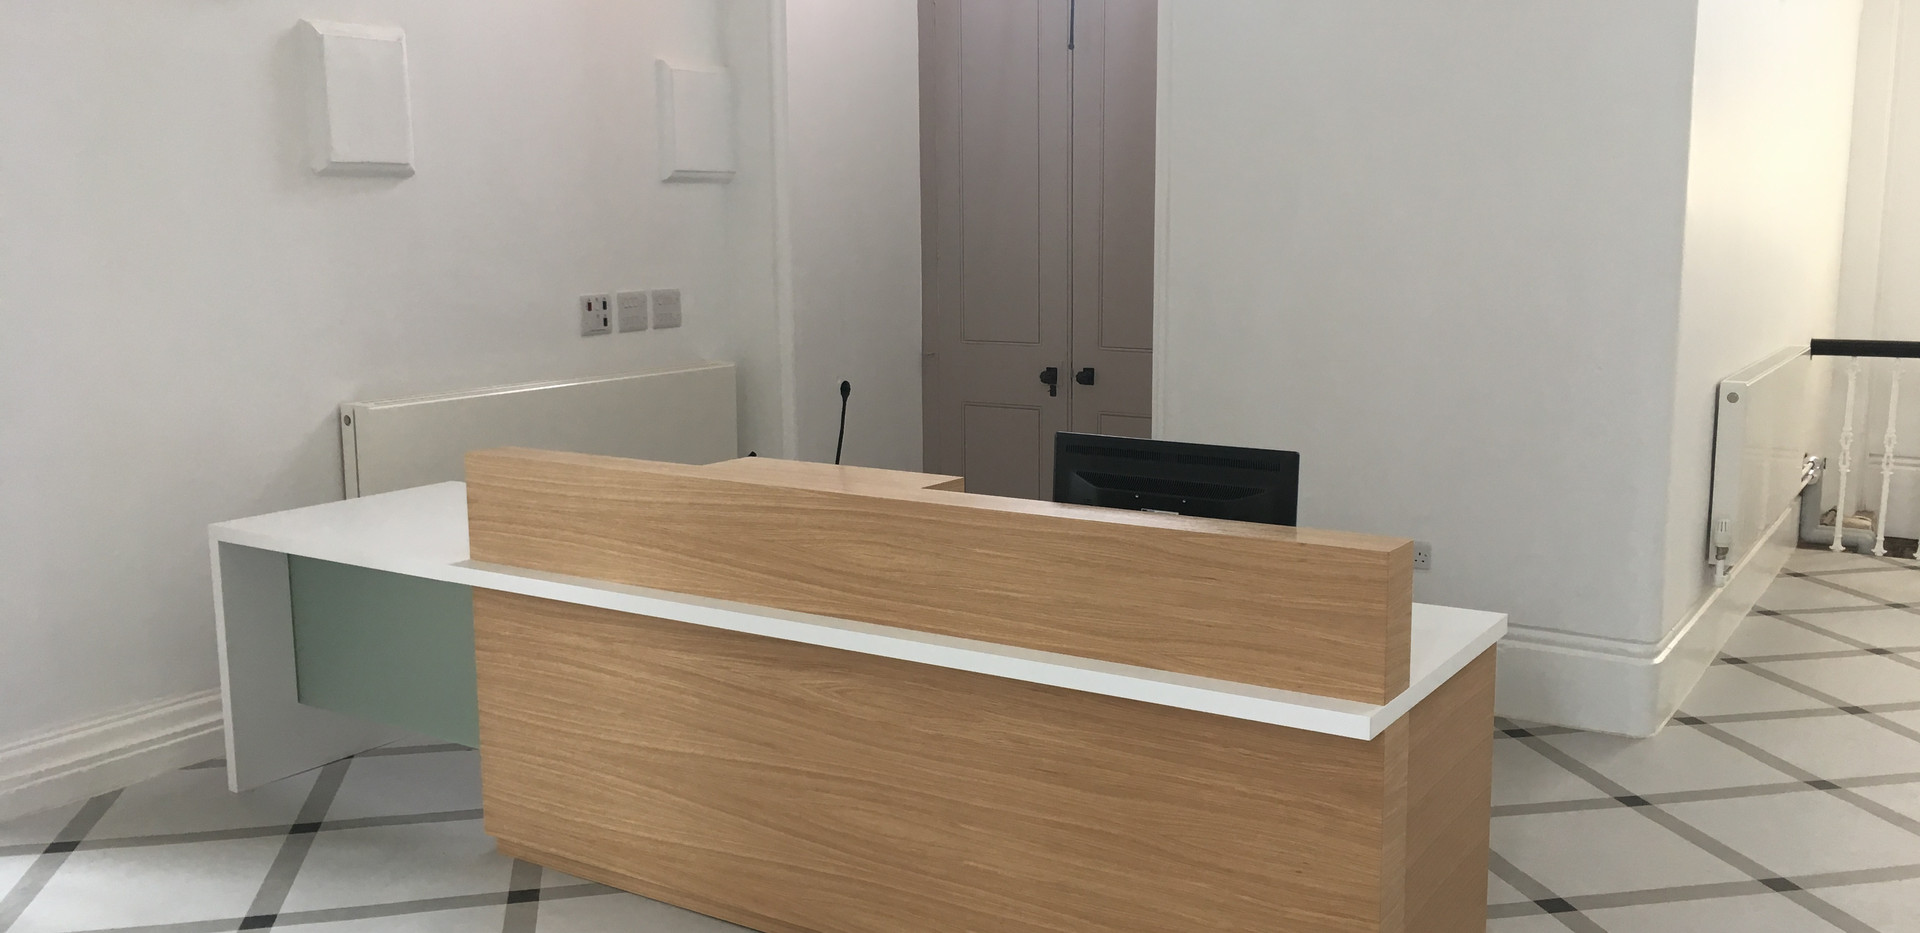 Netley Chapel Reception Desk